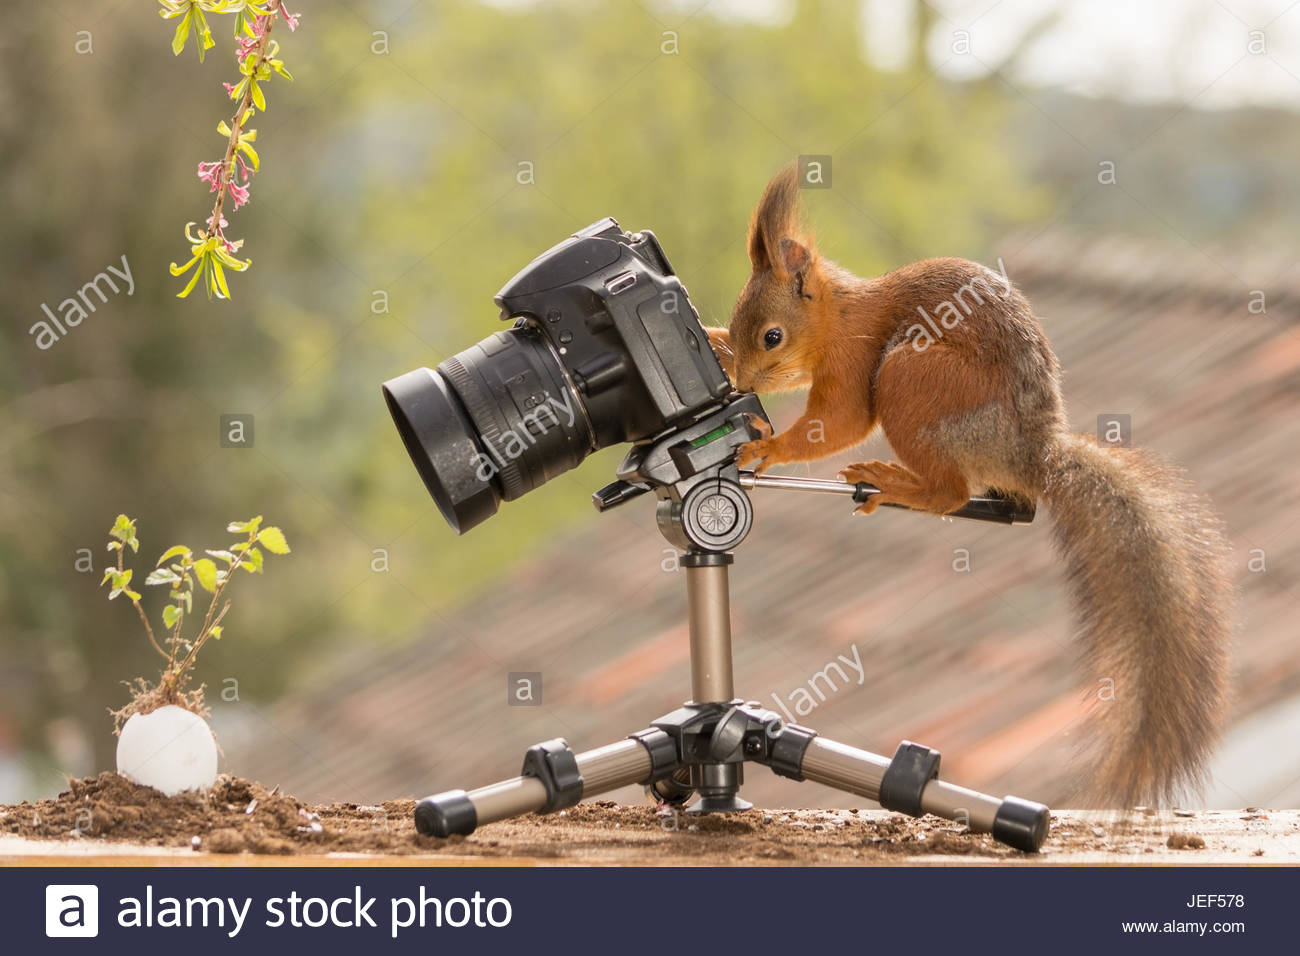 red squirrel who is standing behind a camera pointed at a egg with small plant - Stock Image